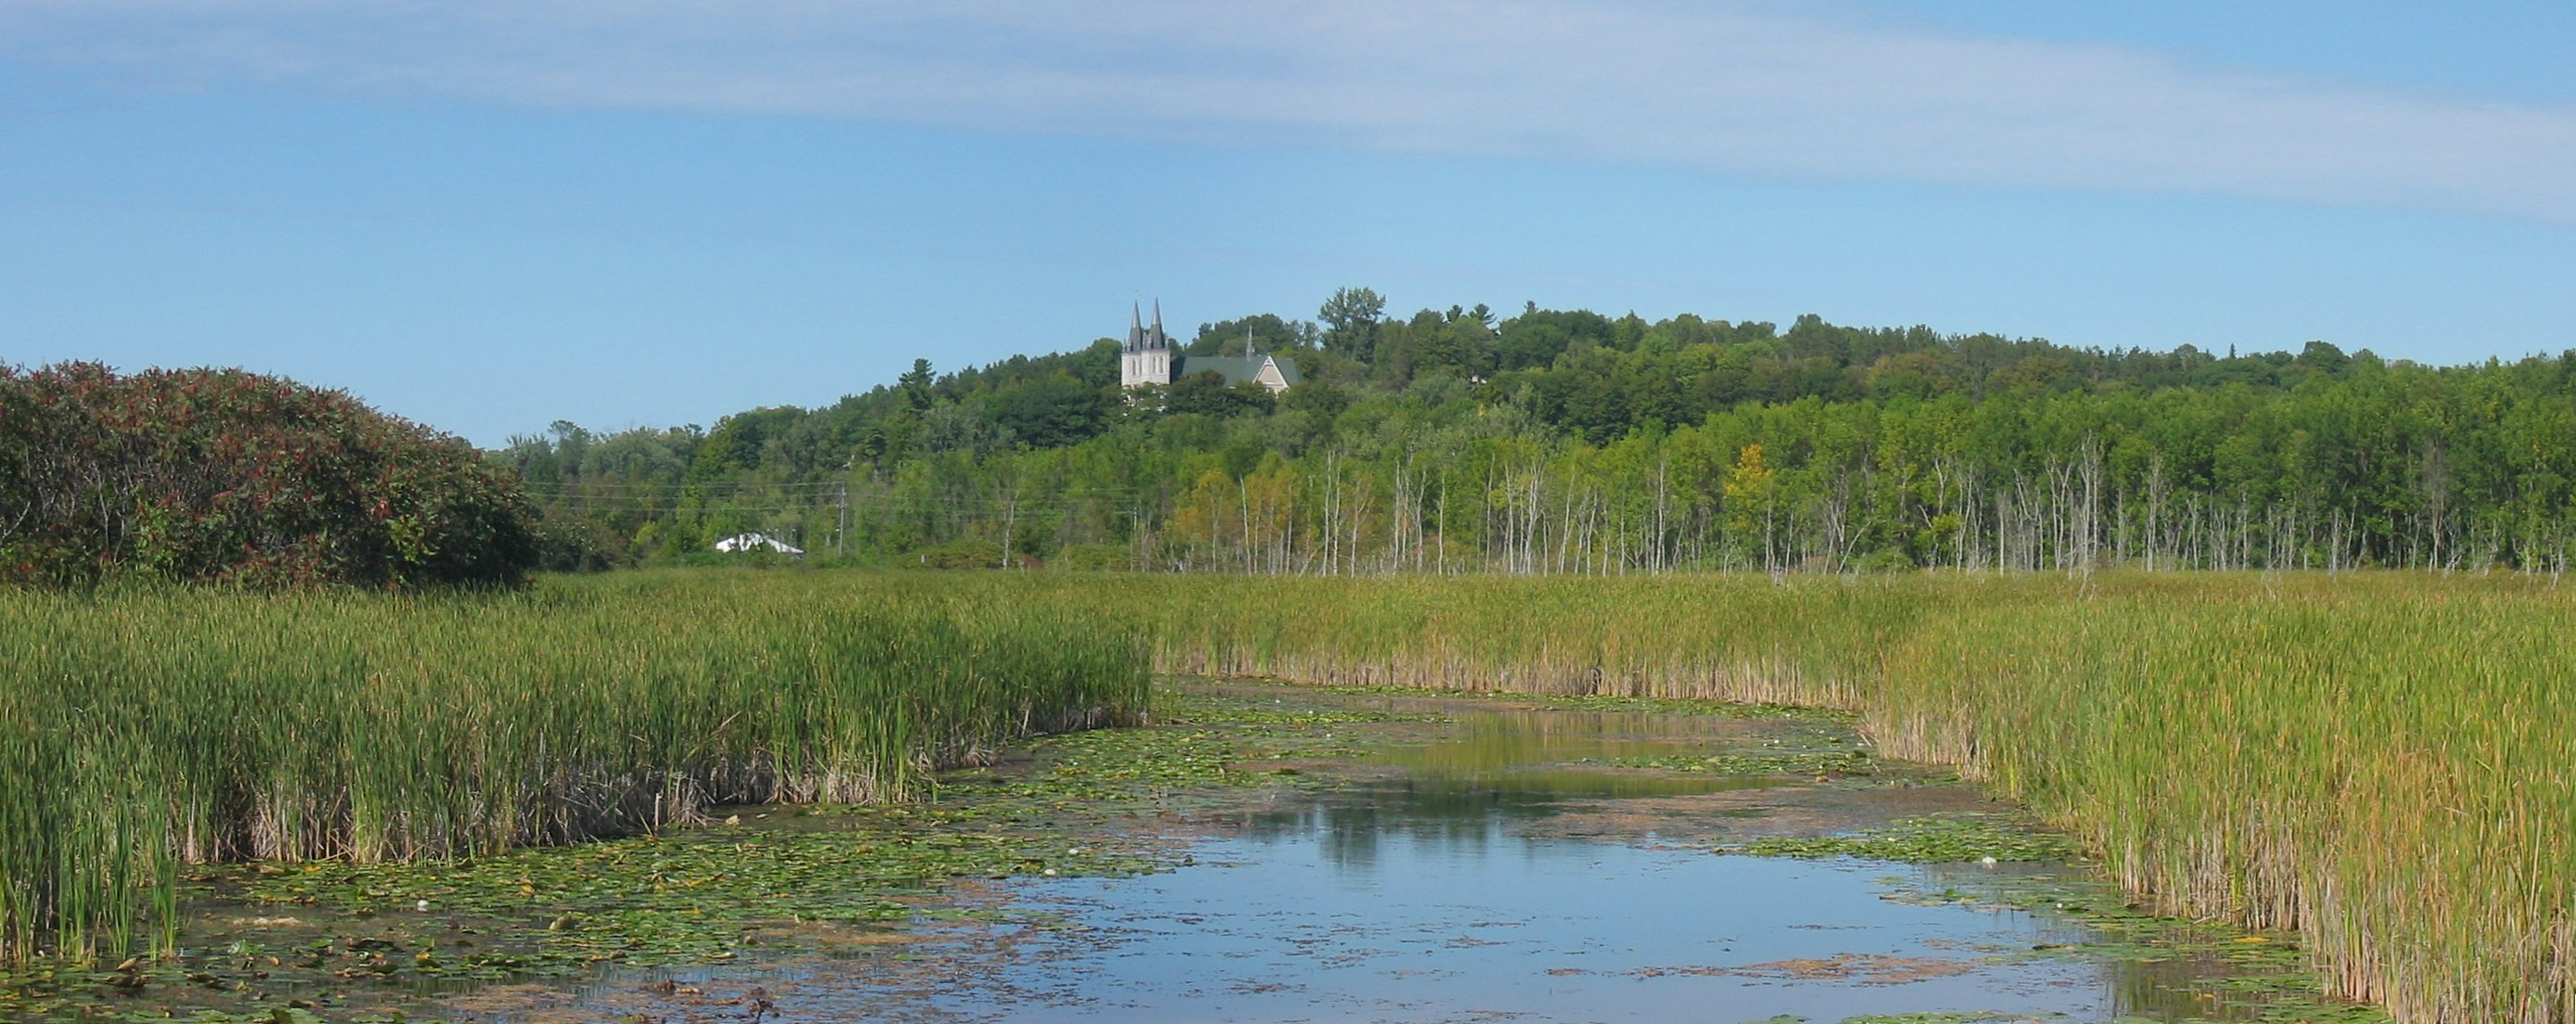 File:Wye Marsh panorama1.jpg - Wikimedia Commons